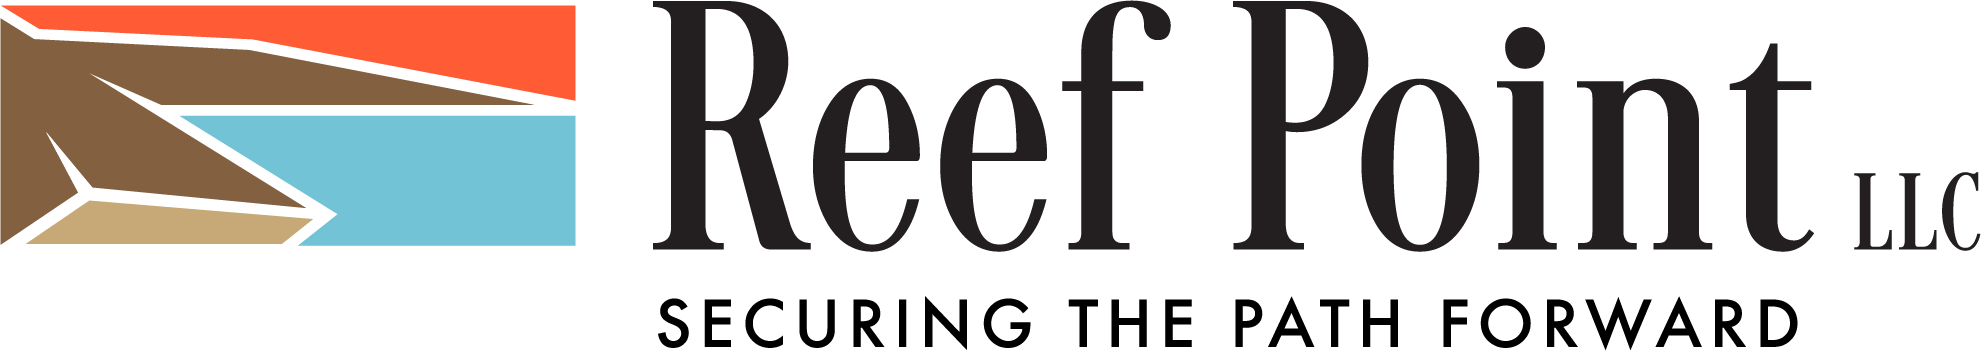 Reef Point LLC Logo